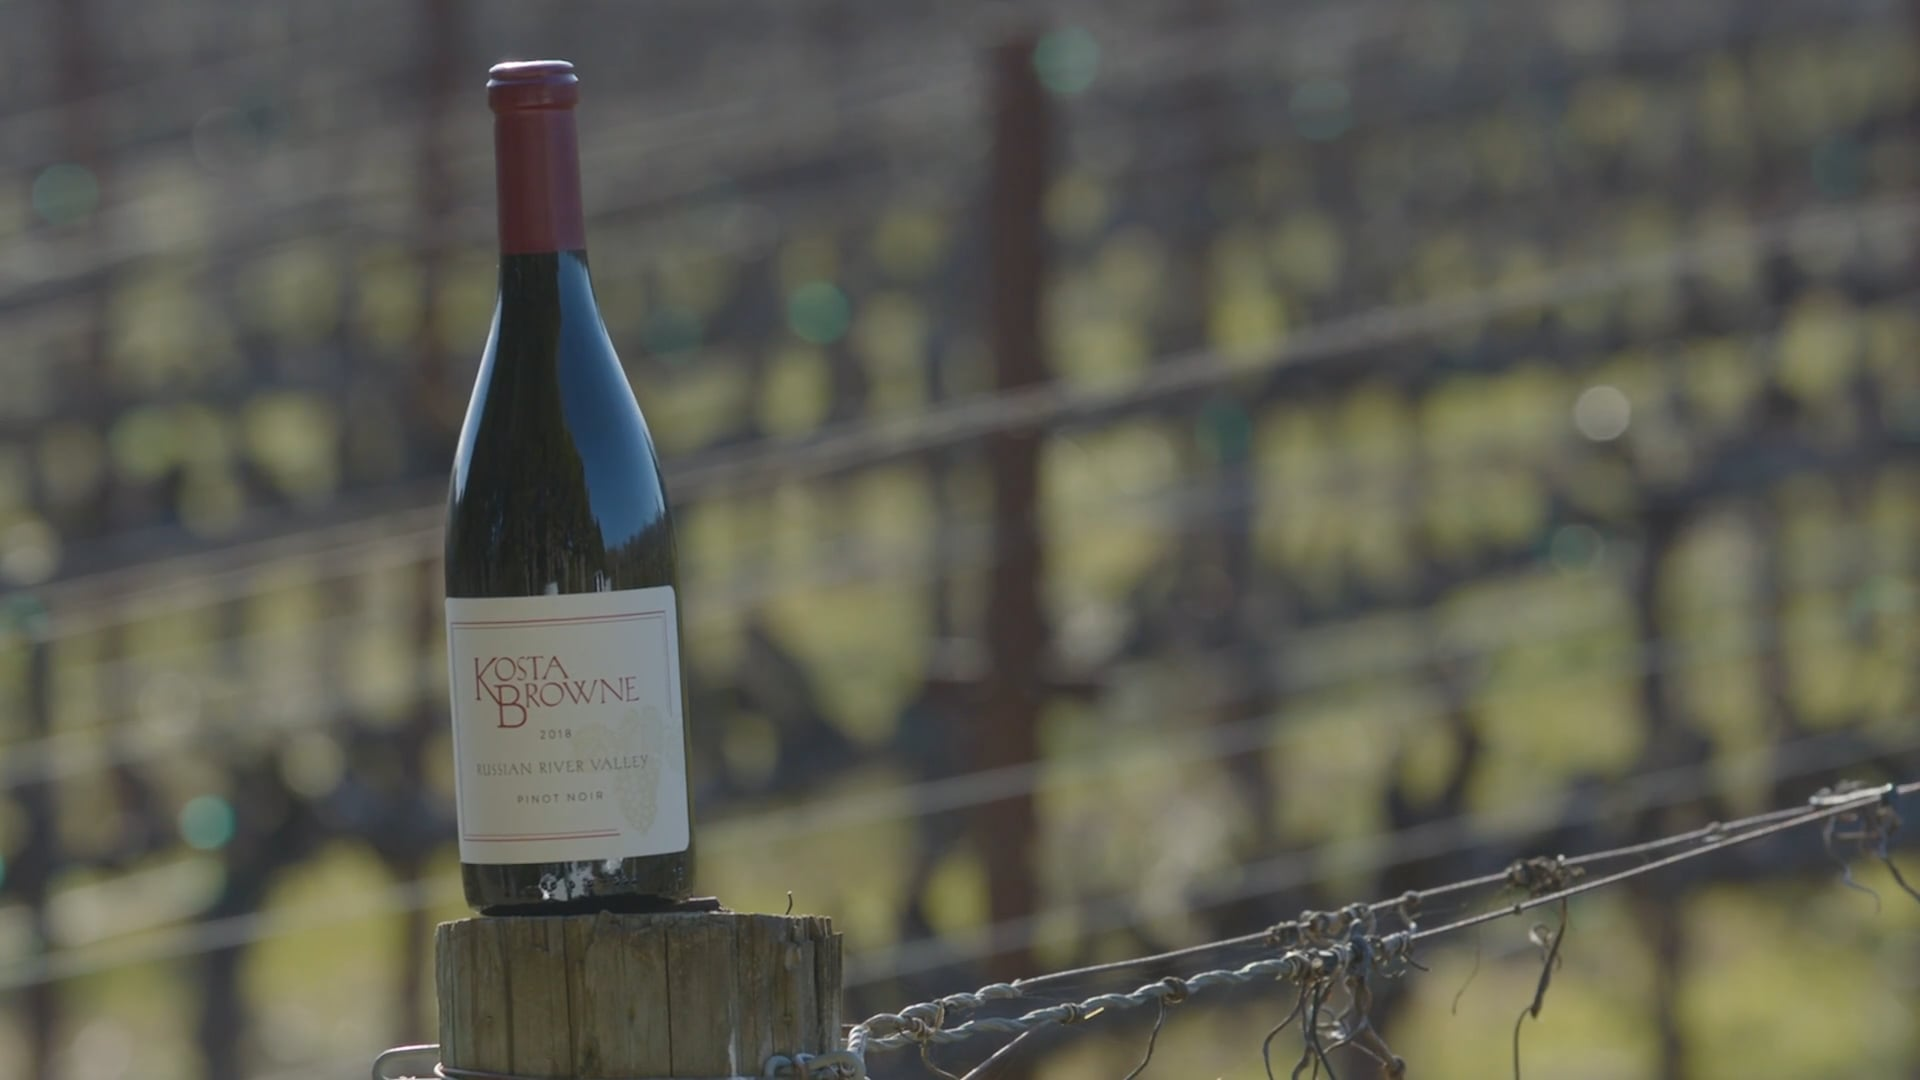 Kosta Browne – Russian River Valley Pinot Noir